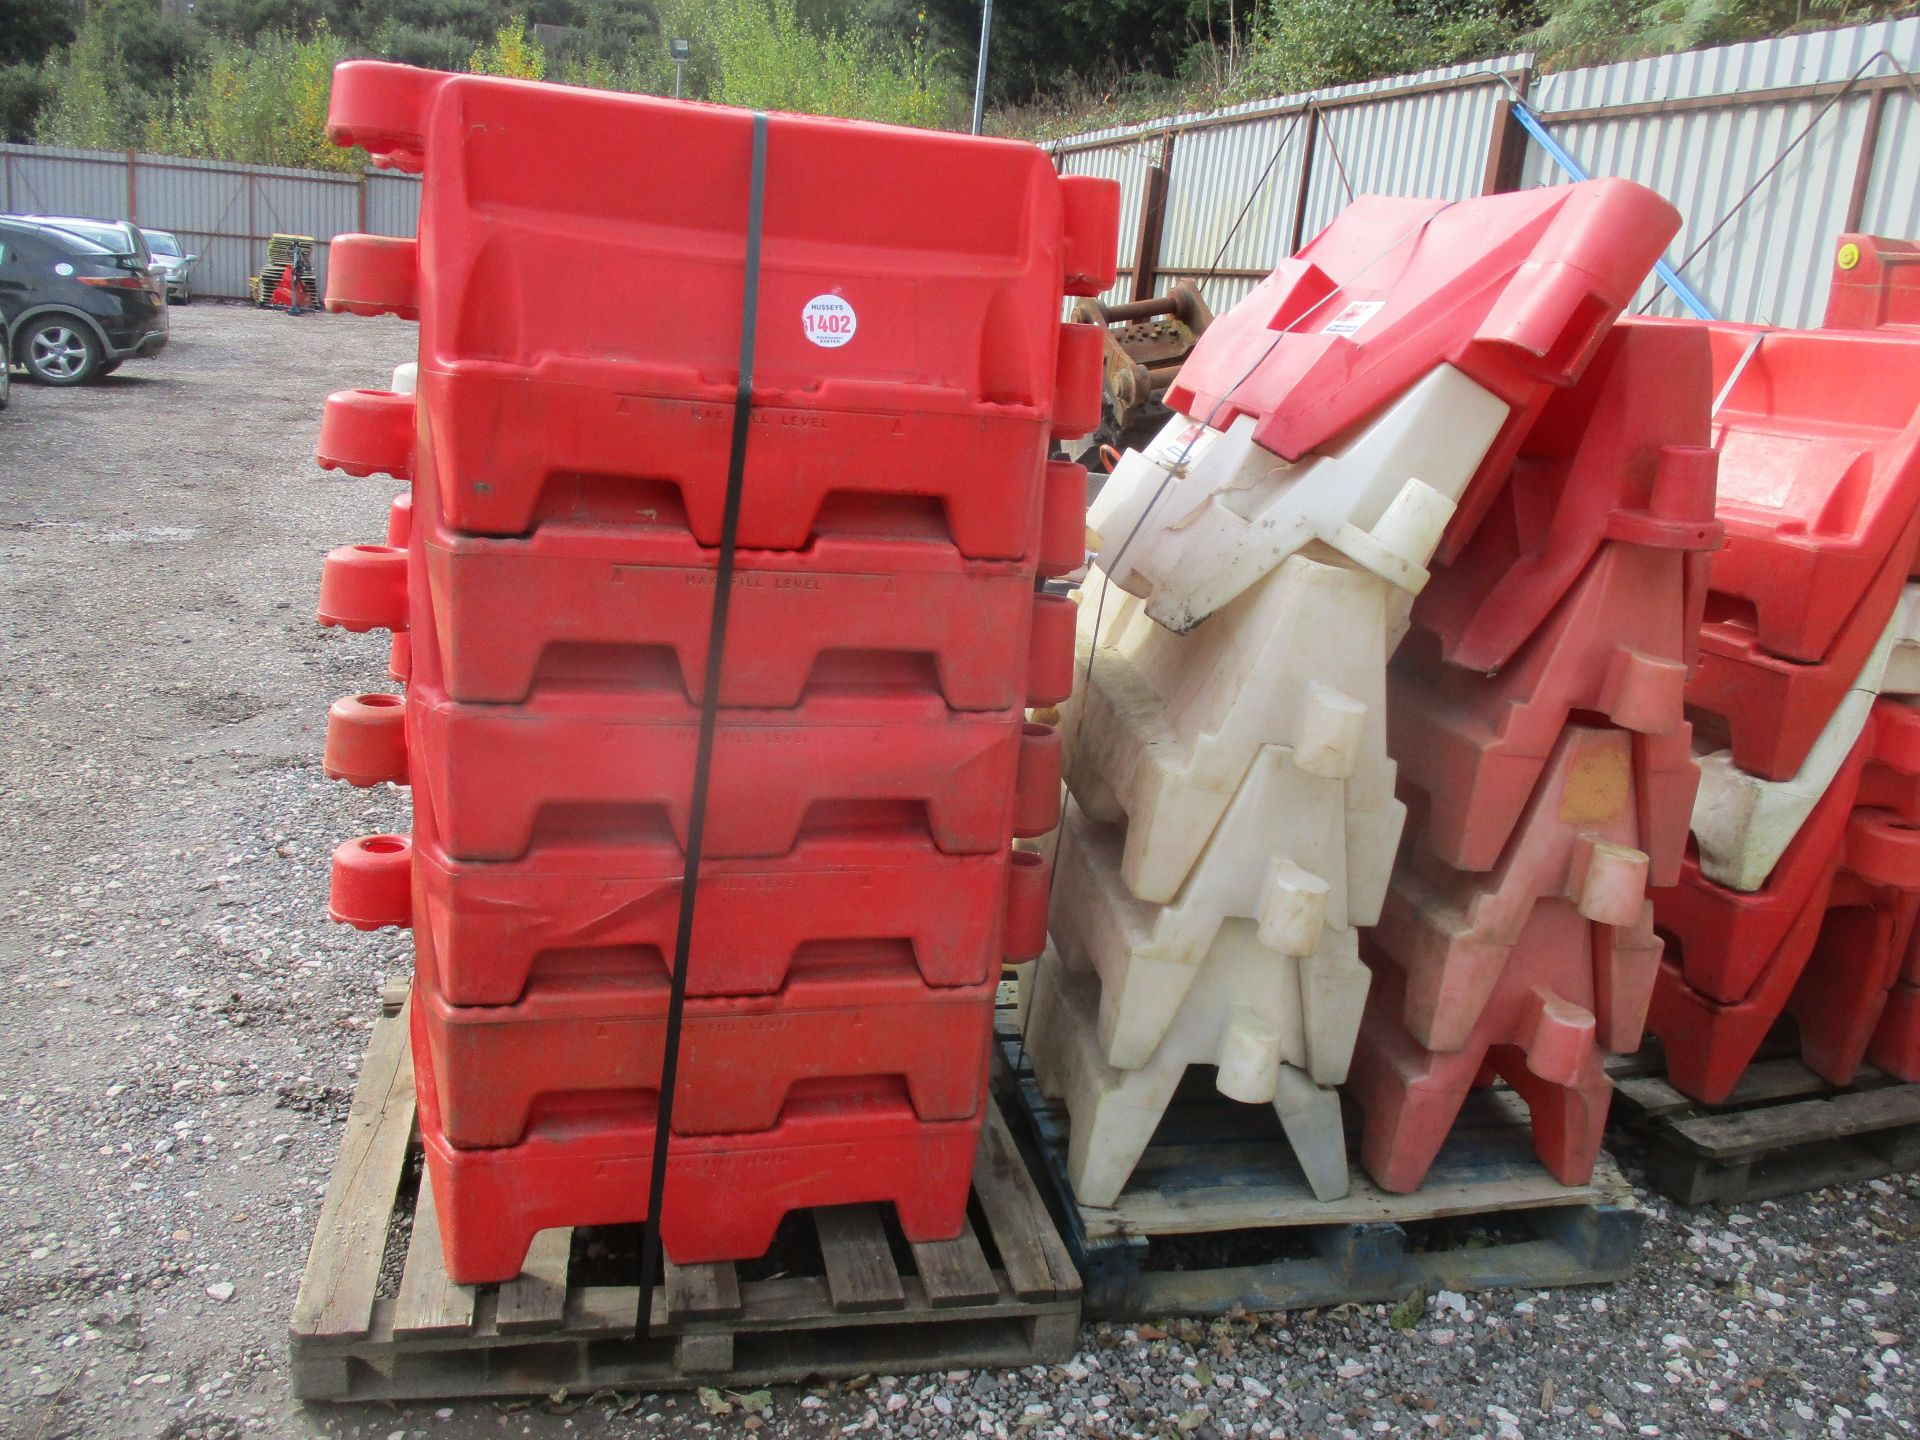 2 PALLETS OF BARRIERS